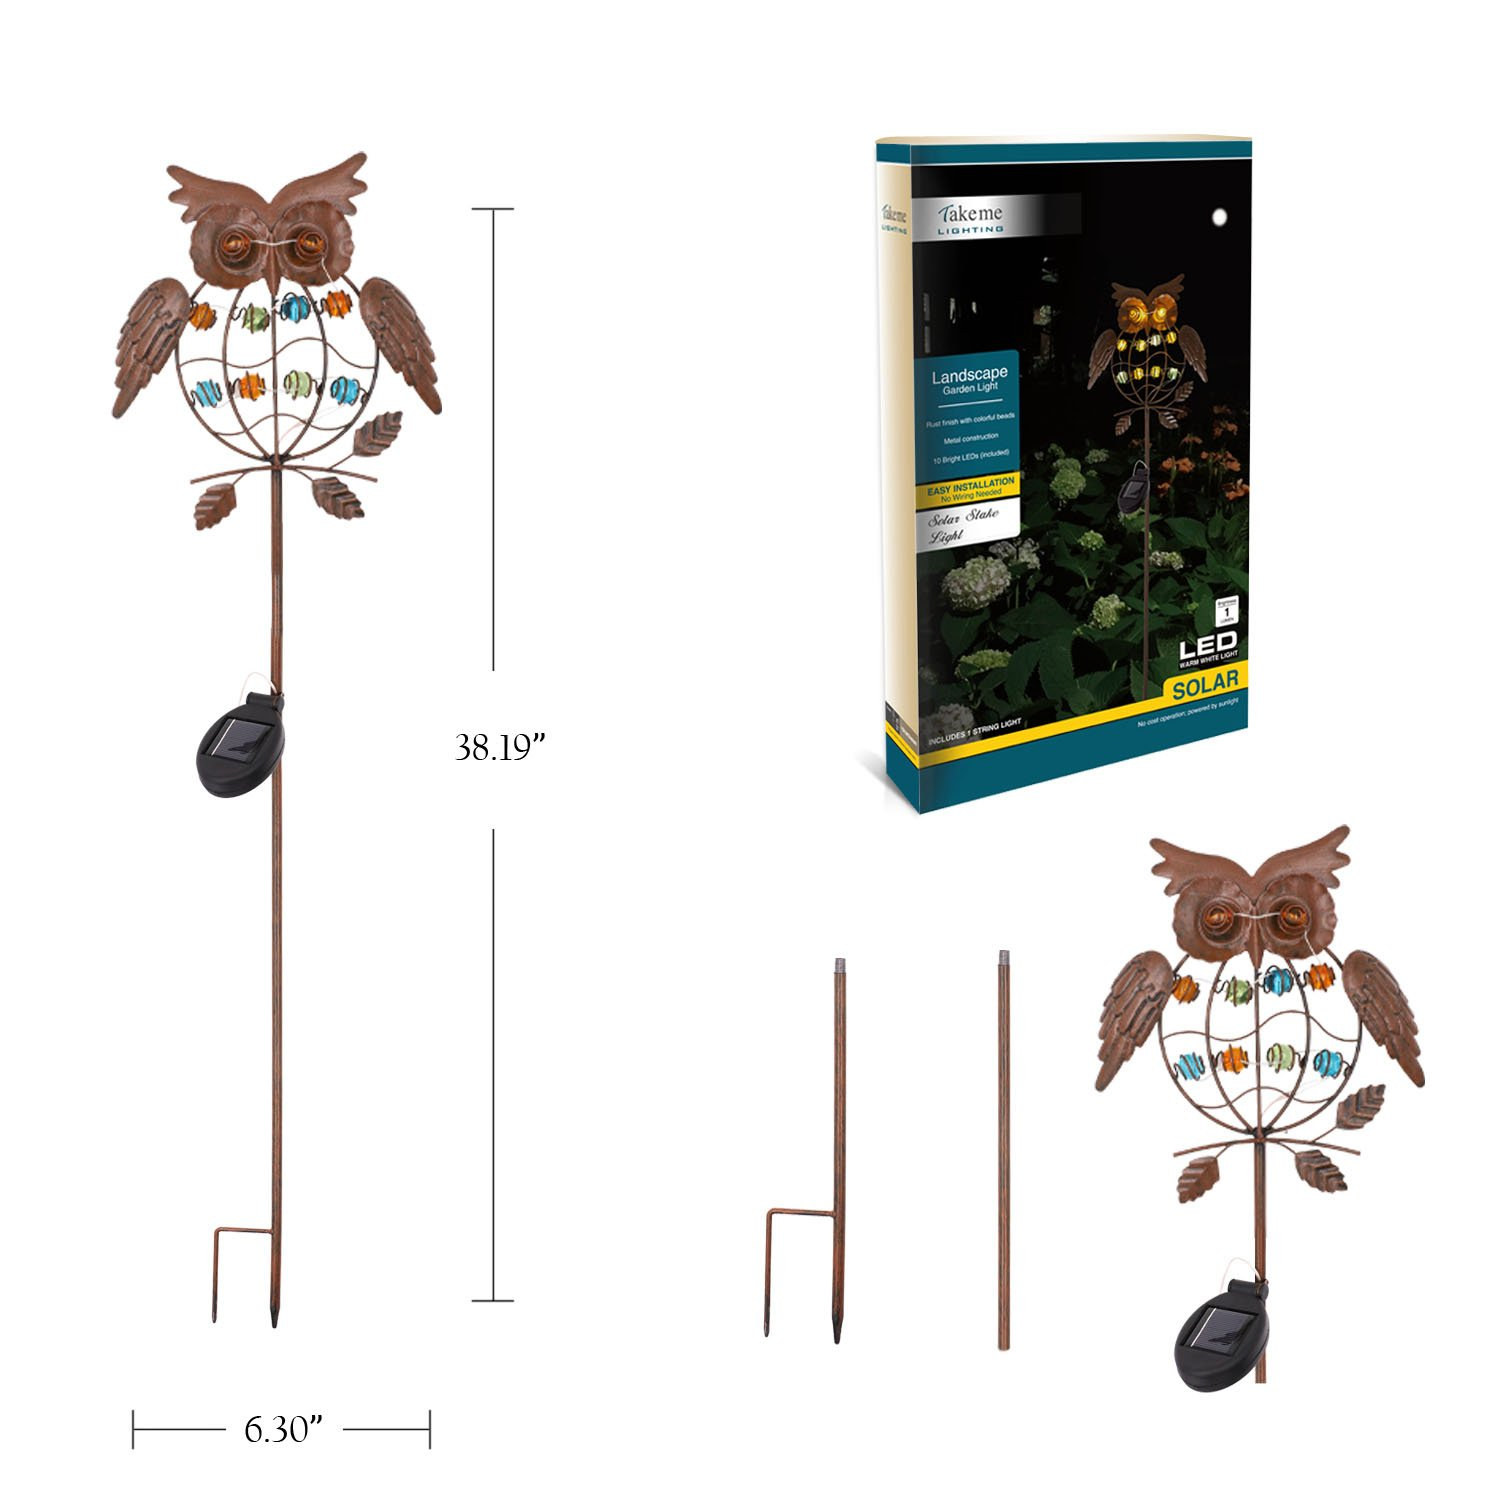 Take Me Garden Solar Lights Outdoor Powered Wiring Outside Landscape Stake Metal Owl Led Decorative For Walkway Pathway Yard